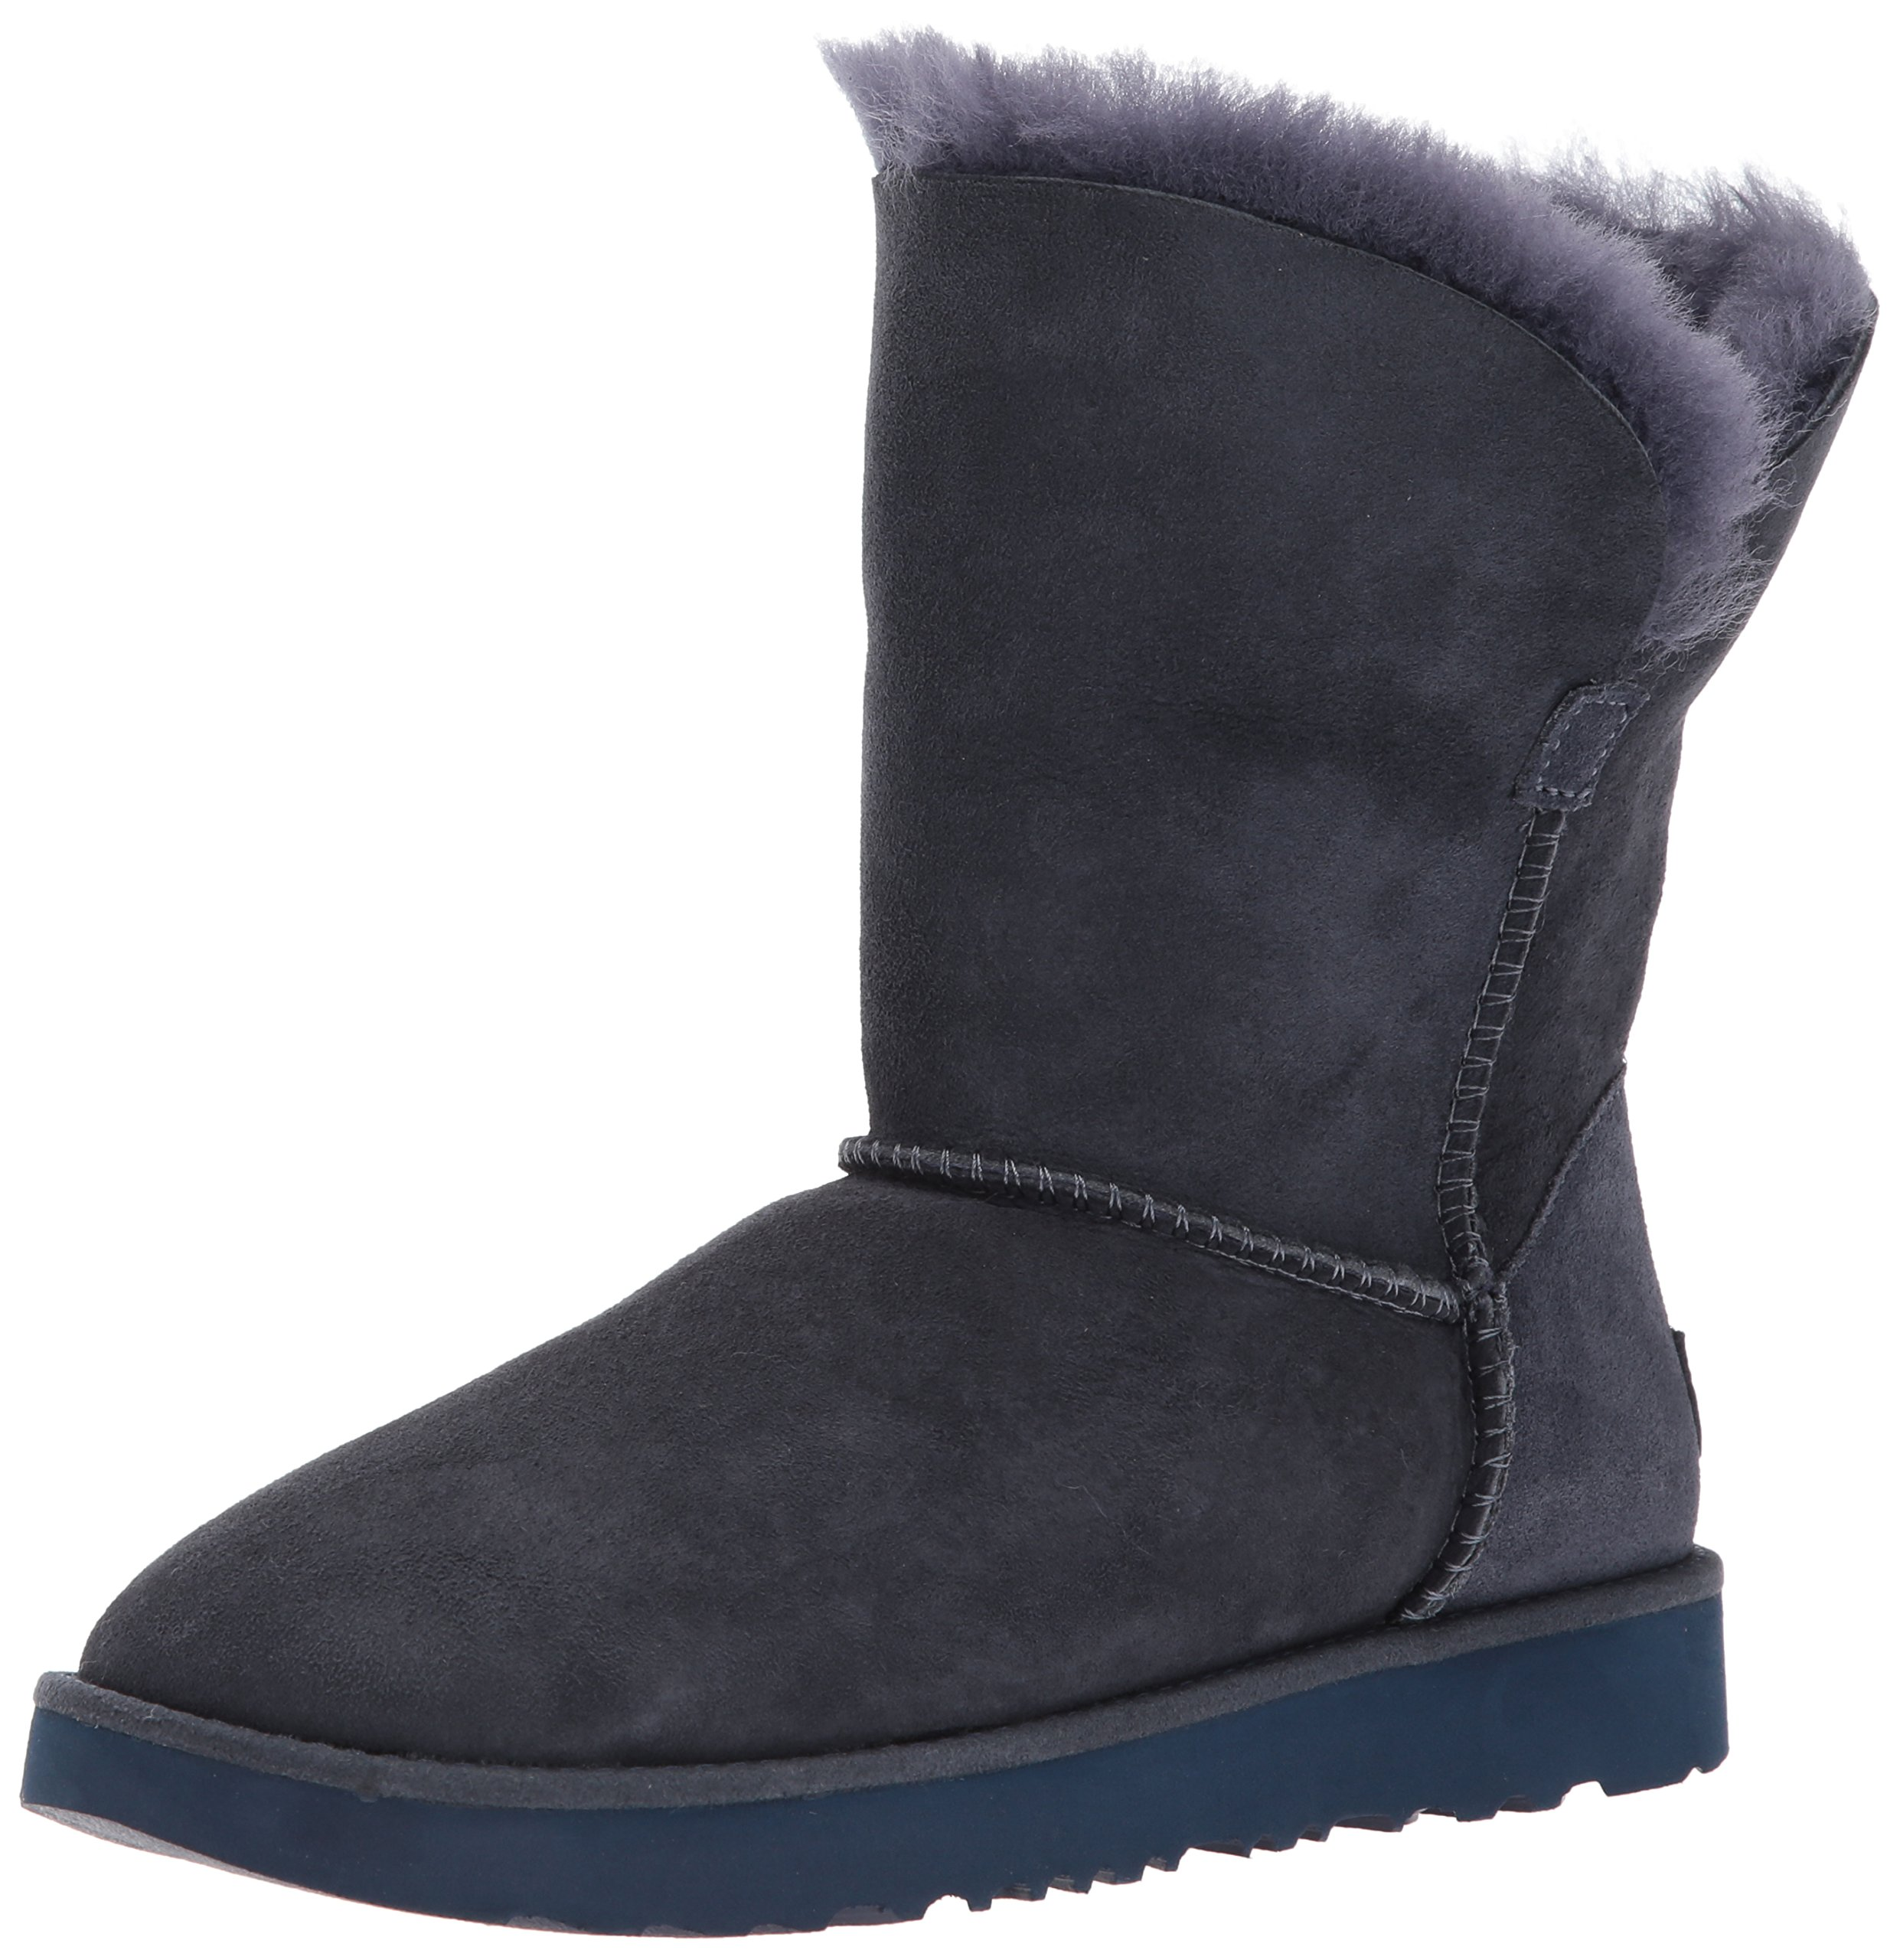 UGG Women's Classic Cuff Short Winter Boot, Imperial, 8.5 M US